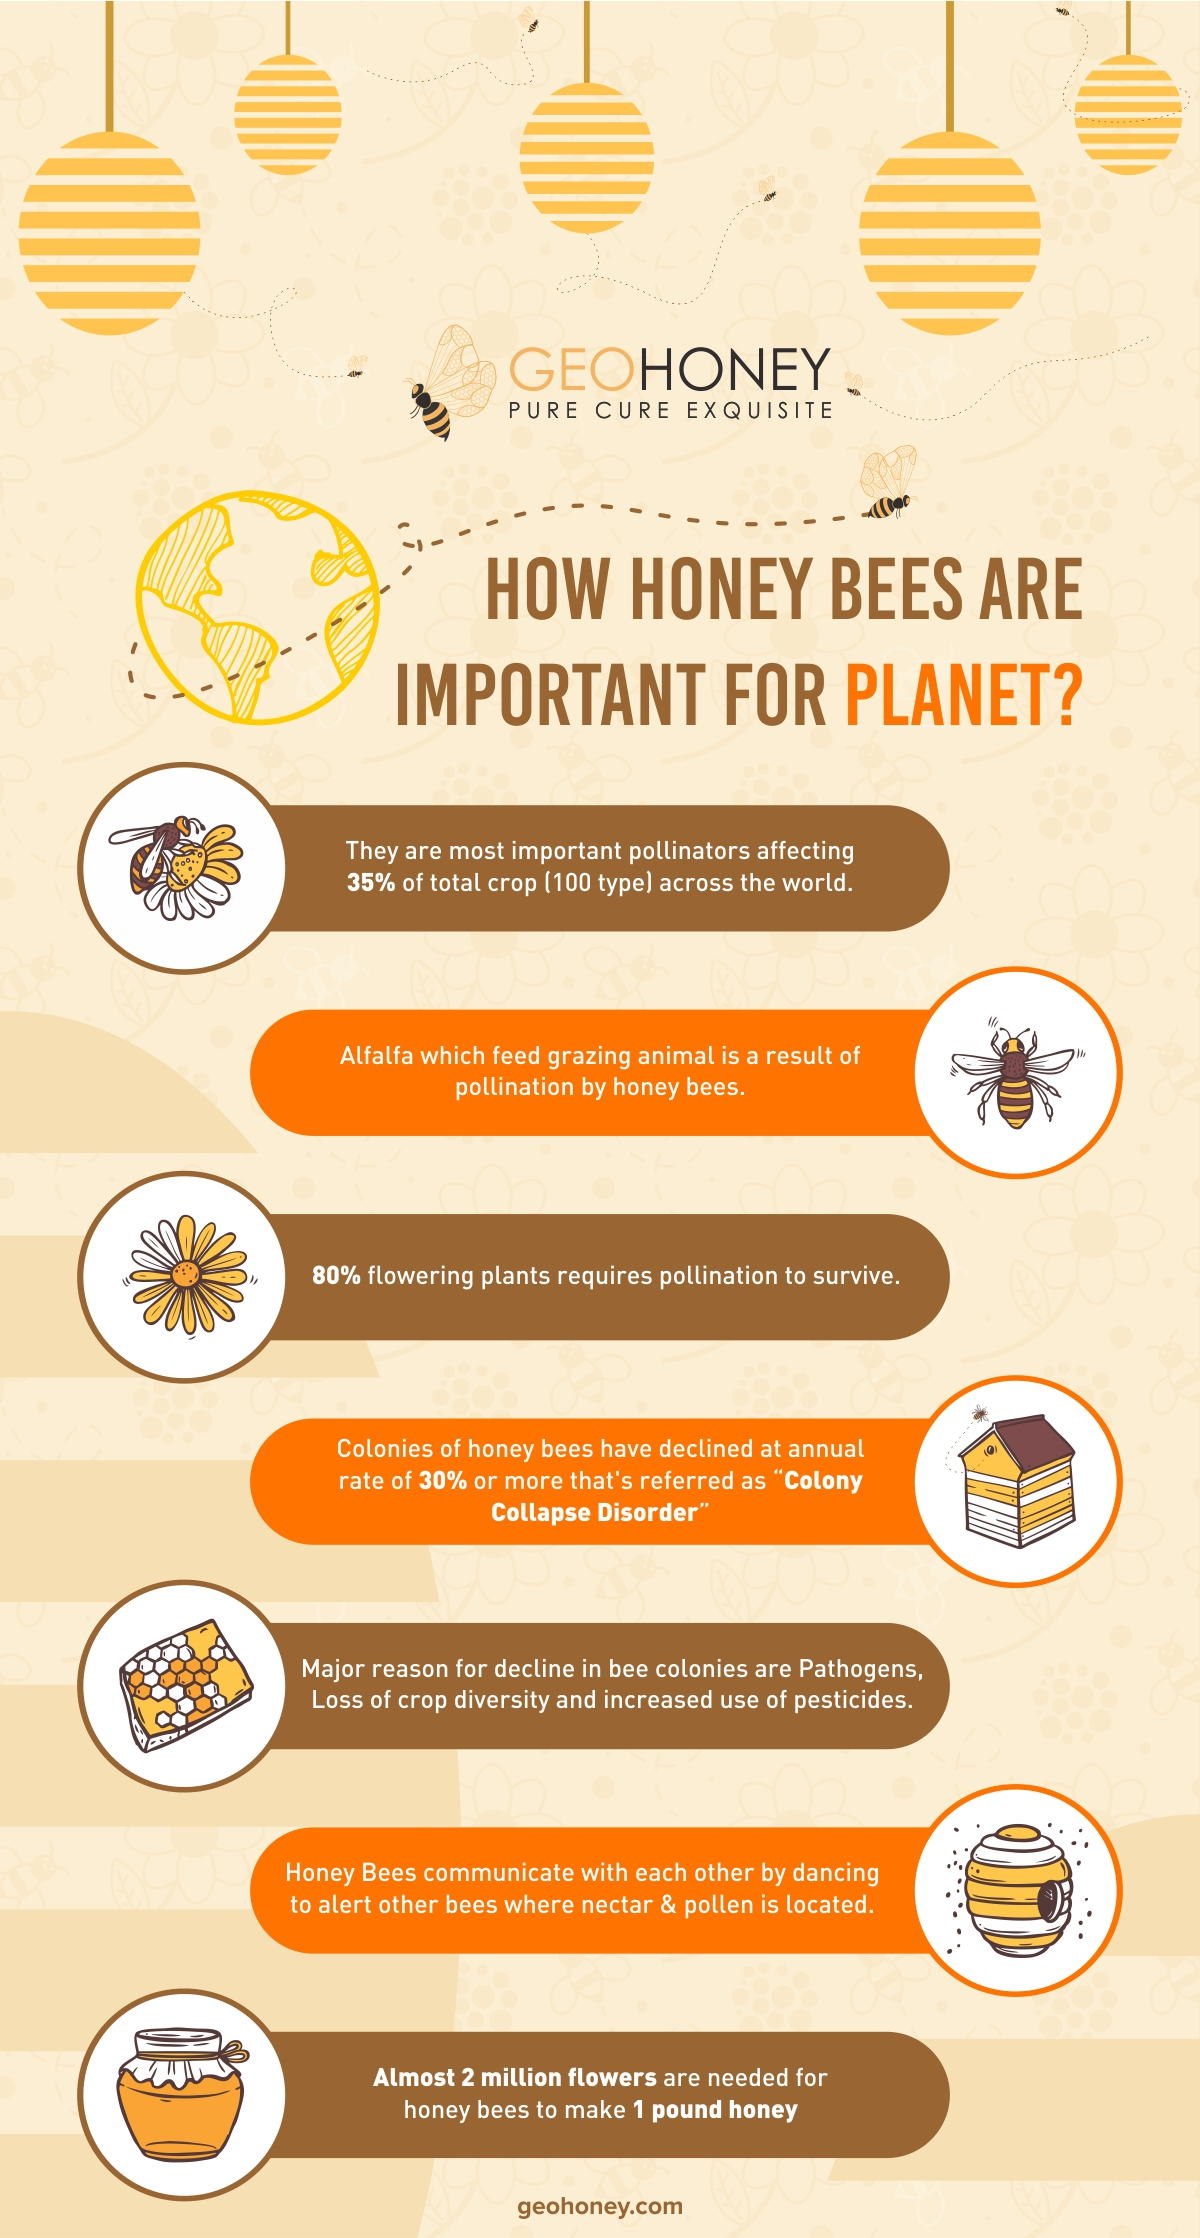 Honey bees are important -Geohoney